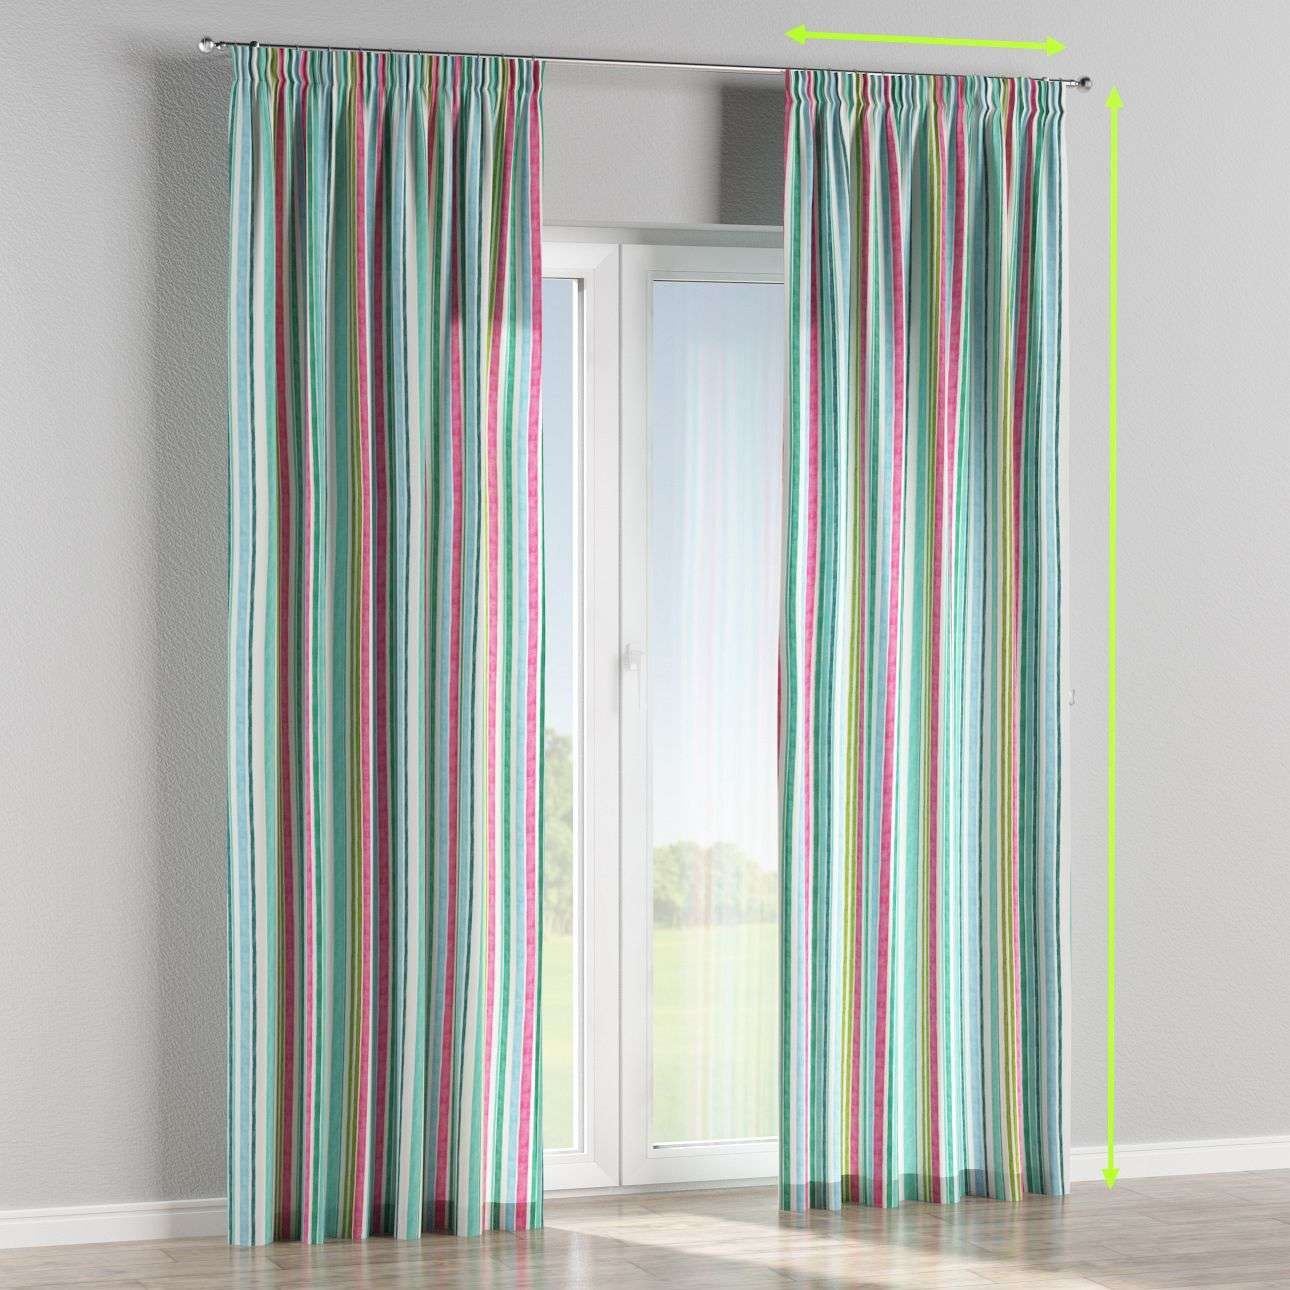 Pencil pleat curtains in collection Monet, fabric: 140-03